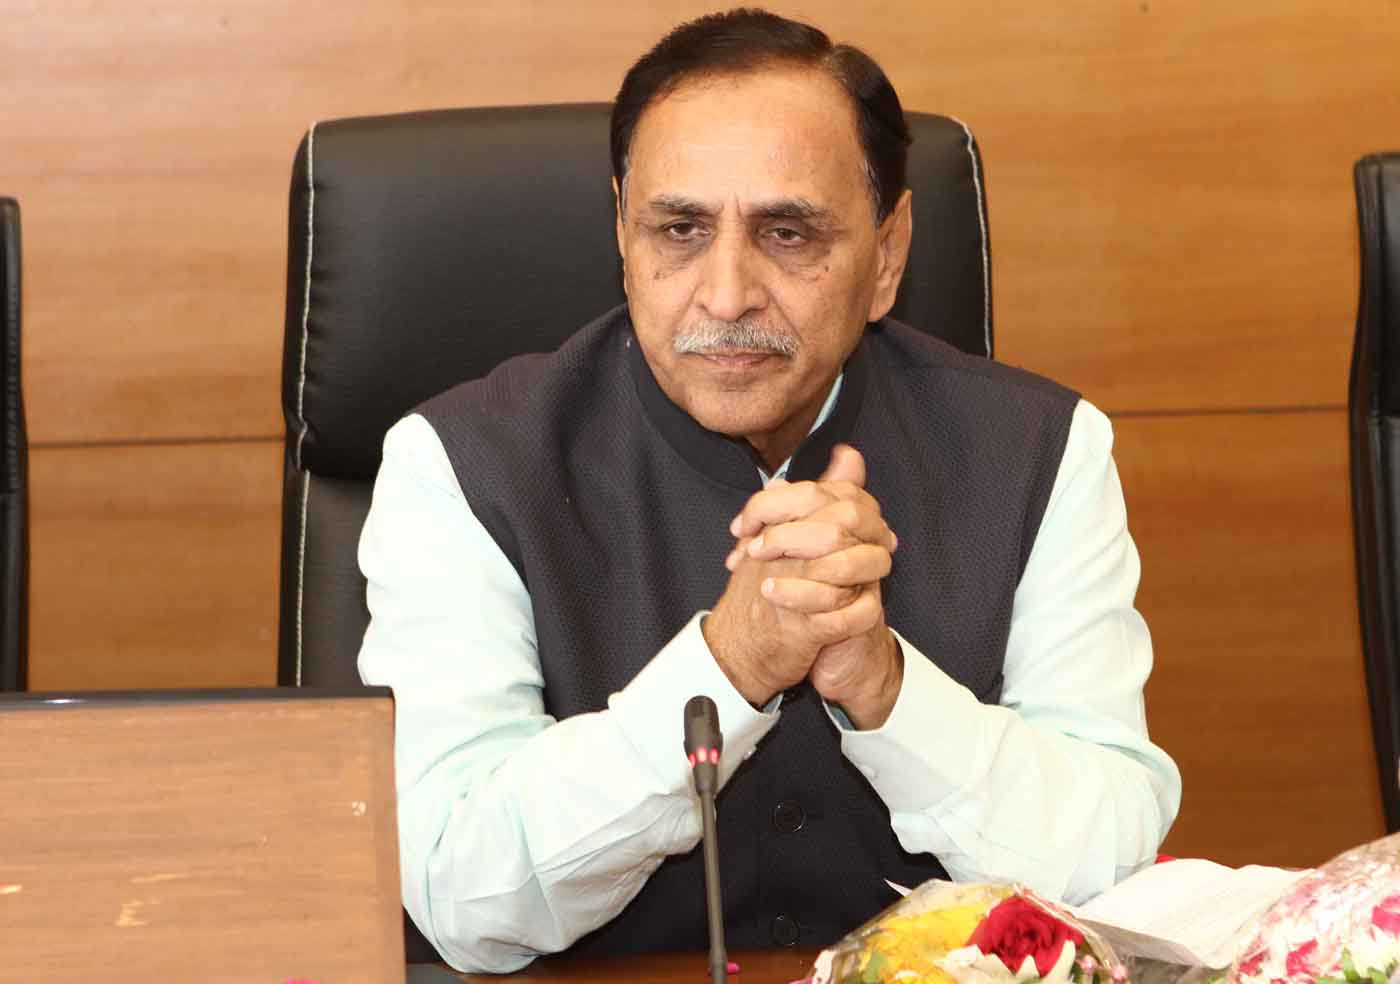 Gujarat CM at Dholera SIR tomorrow to lay foundation stone for two projects